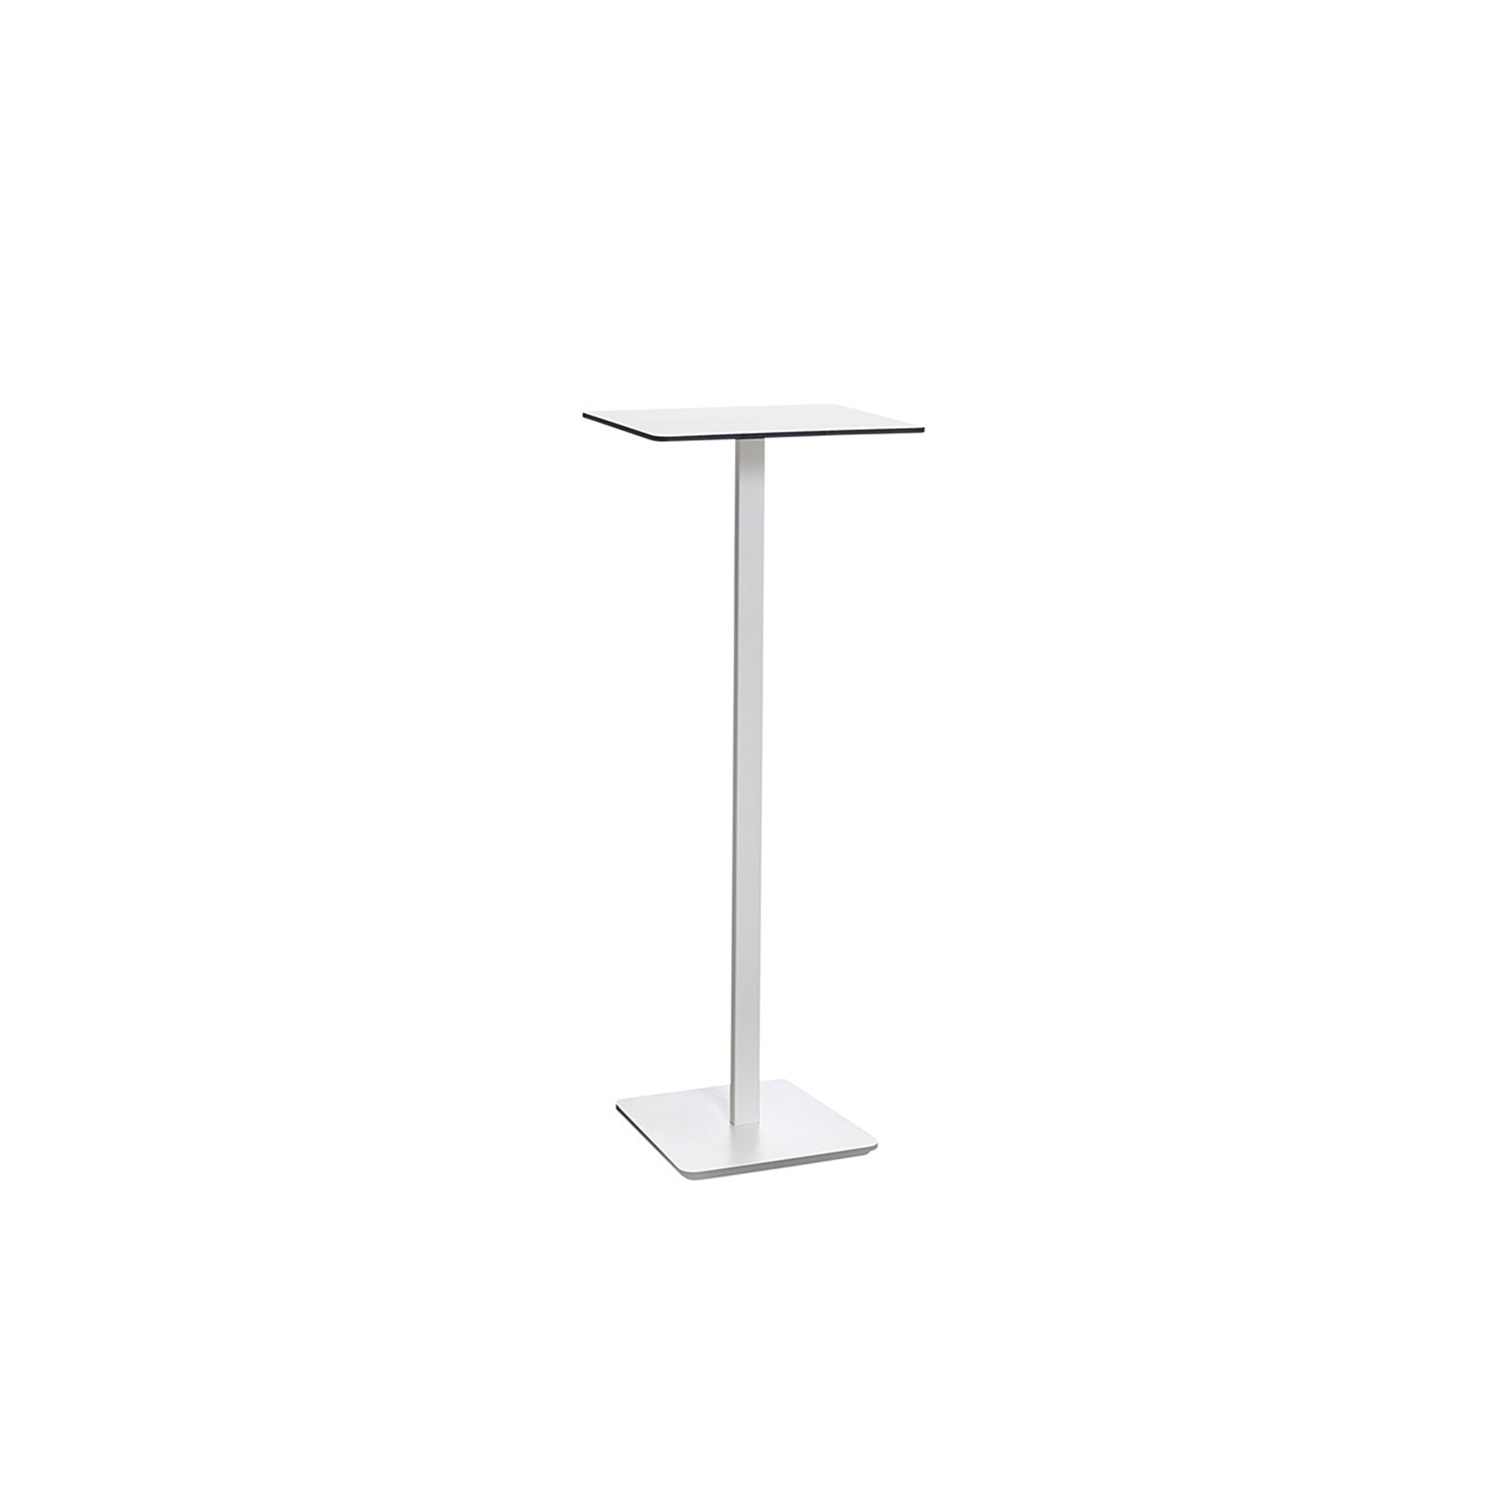 Ponoq Rectangular High Table - In the beginning, ponoq (2009-2010) was a wall mounted coat rack in compact laminate. Our product development led to free-standing clothes hanger with base and pillars, with or without umbrella stands. The pillars and the base-plate made it easy to develop further with a tabletop/base plate in the compact laminate which became a table. The pedestal table ponoq's base-plate can be secured to the floor using a concealed fitting and ideal in environments that are subjected to a lot of hard wear and tear.  Pedestal table comes in seven heights, with rectangular or round tabletops in a choice of sizes. ponoq has a tabletop/base-plate in white or black compact laminate, and supporting pedestals in white or black lacquered metal. ponoq pedestal table is ideal for waiting rooms, corridors, schools, museums, art galleries or wherever furniture needs to cope with a lot of hard wear and tear.  Additional heights and dimensions are available, please see technical sheet attached and enquire for more details. | Matter of Stuff